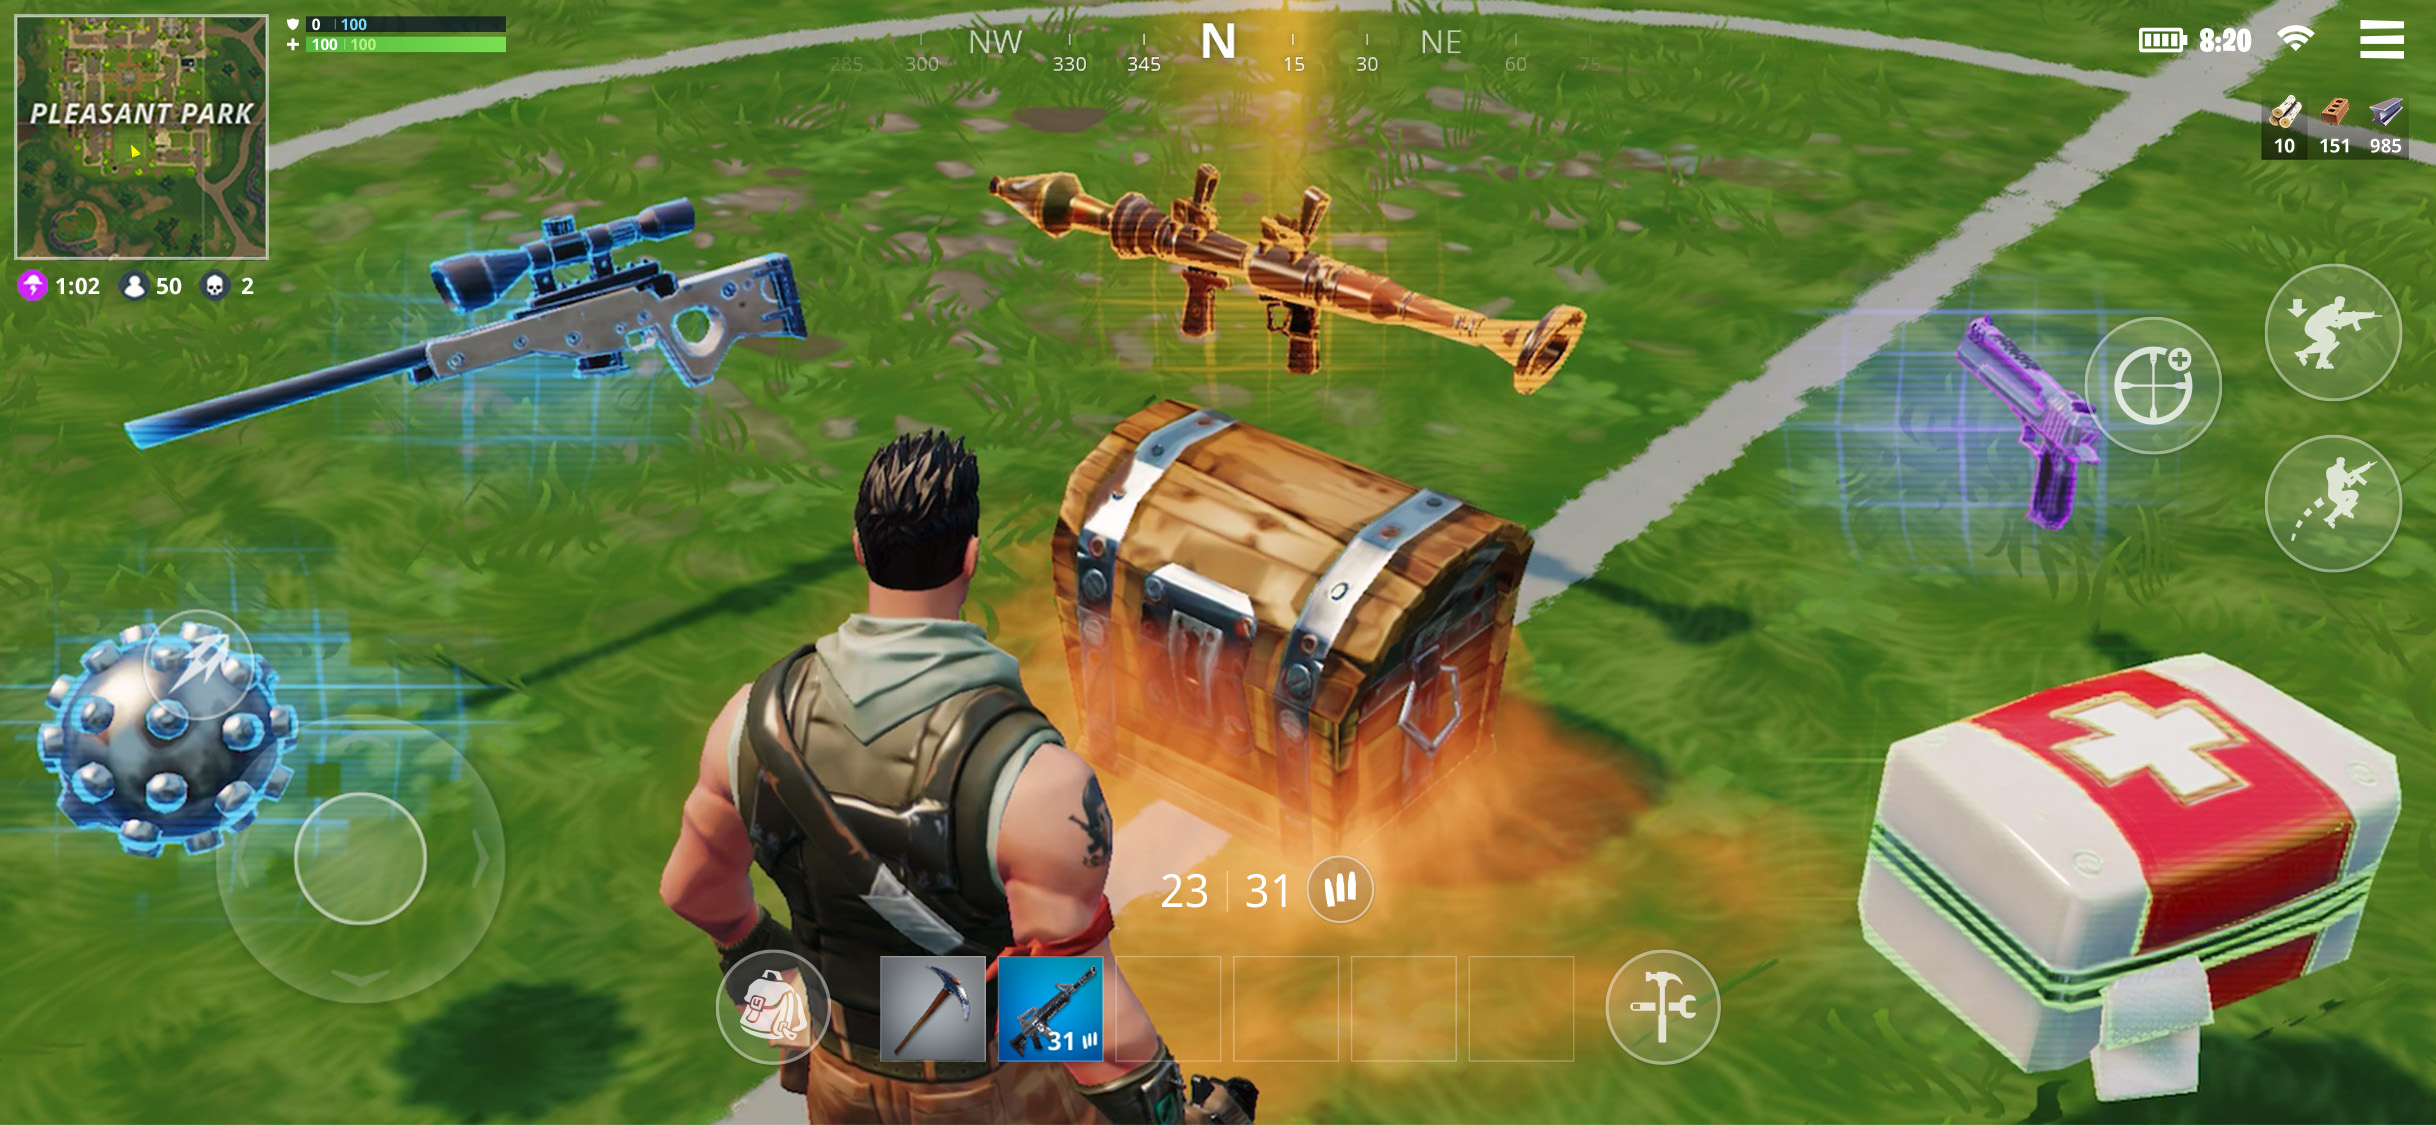 How to win at Fortnite Three easy